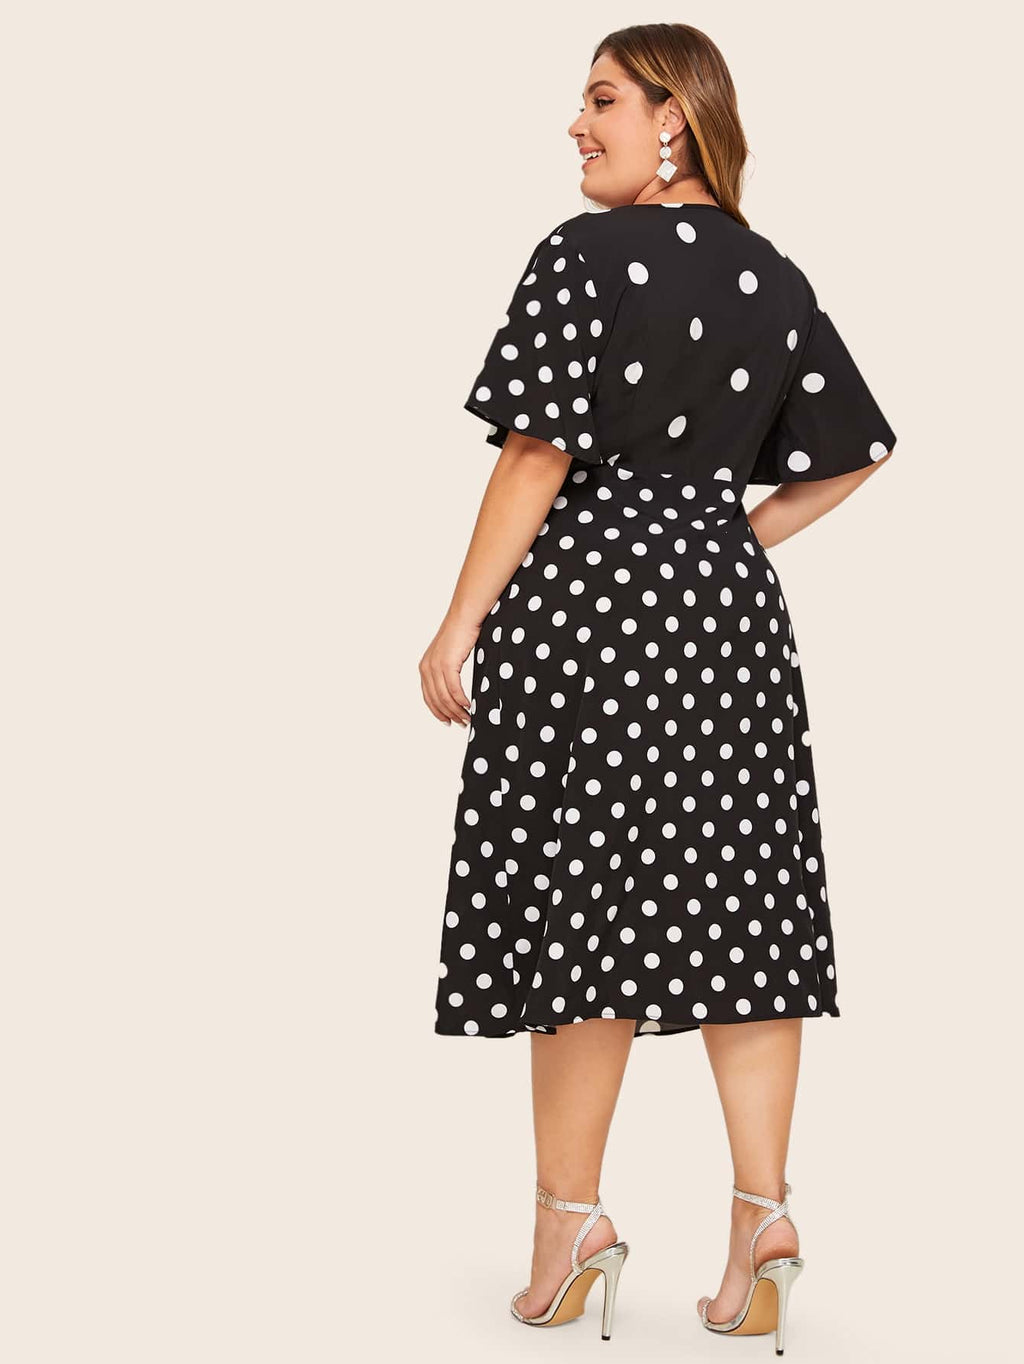 Plus Size Adorable Deep V-Neck Polka Dot Twist Dress